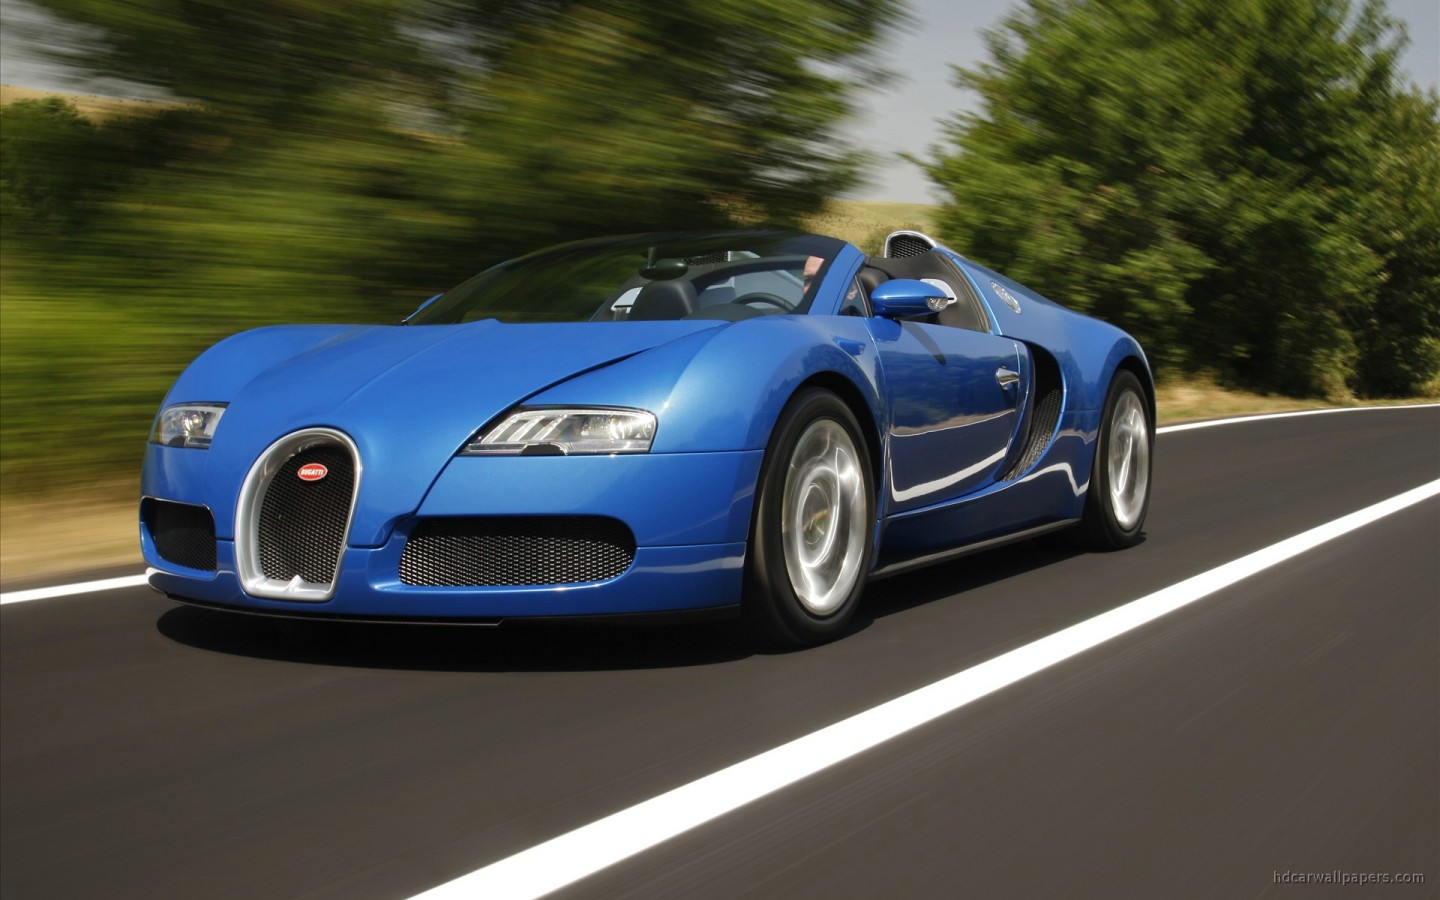 Wallpaper Bugatti Veyron Grand Sport: 2010 Bugatti Veyron Grand Sport Rome Wallpaper